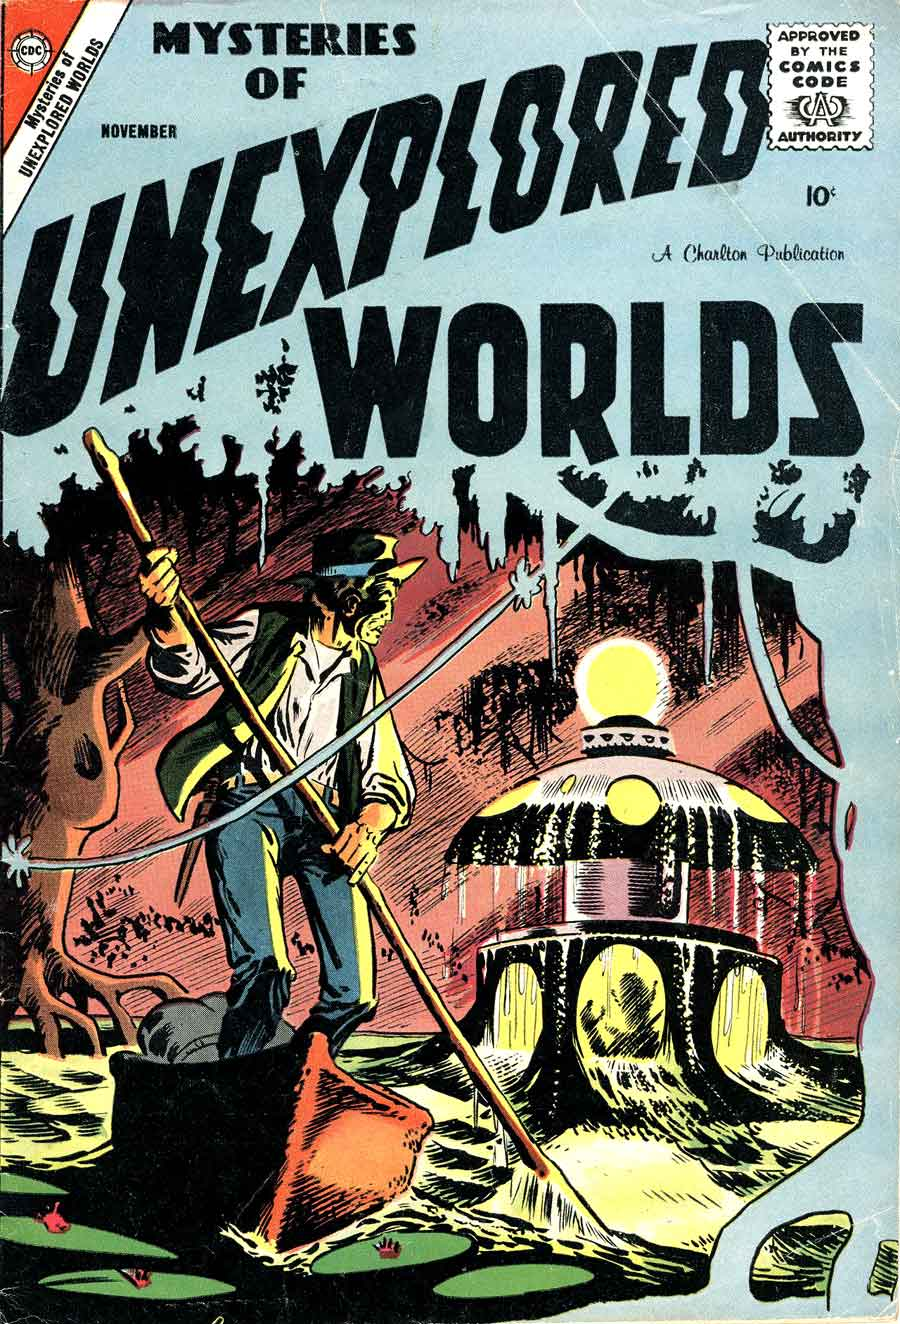 Mysteries of Unexplored Worlds v1 #10 charlton comic book cover art by Steve Ditko